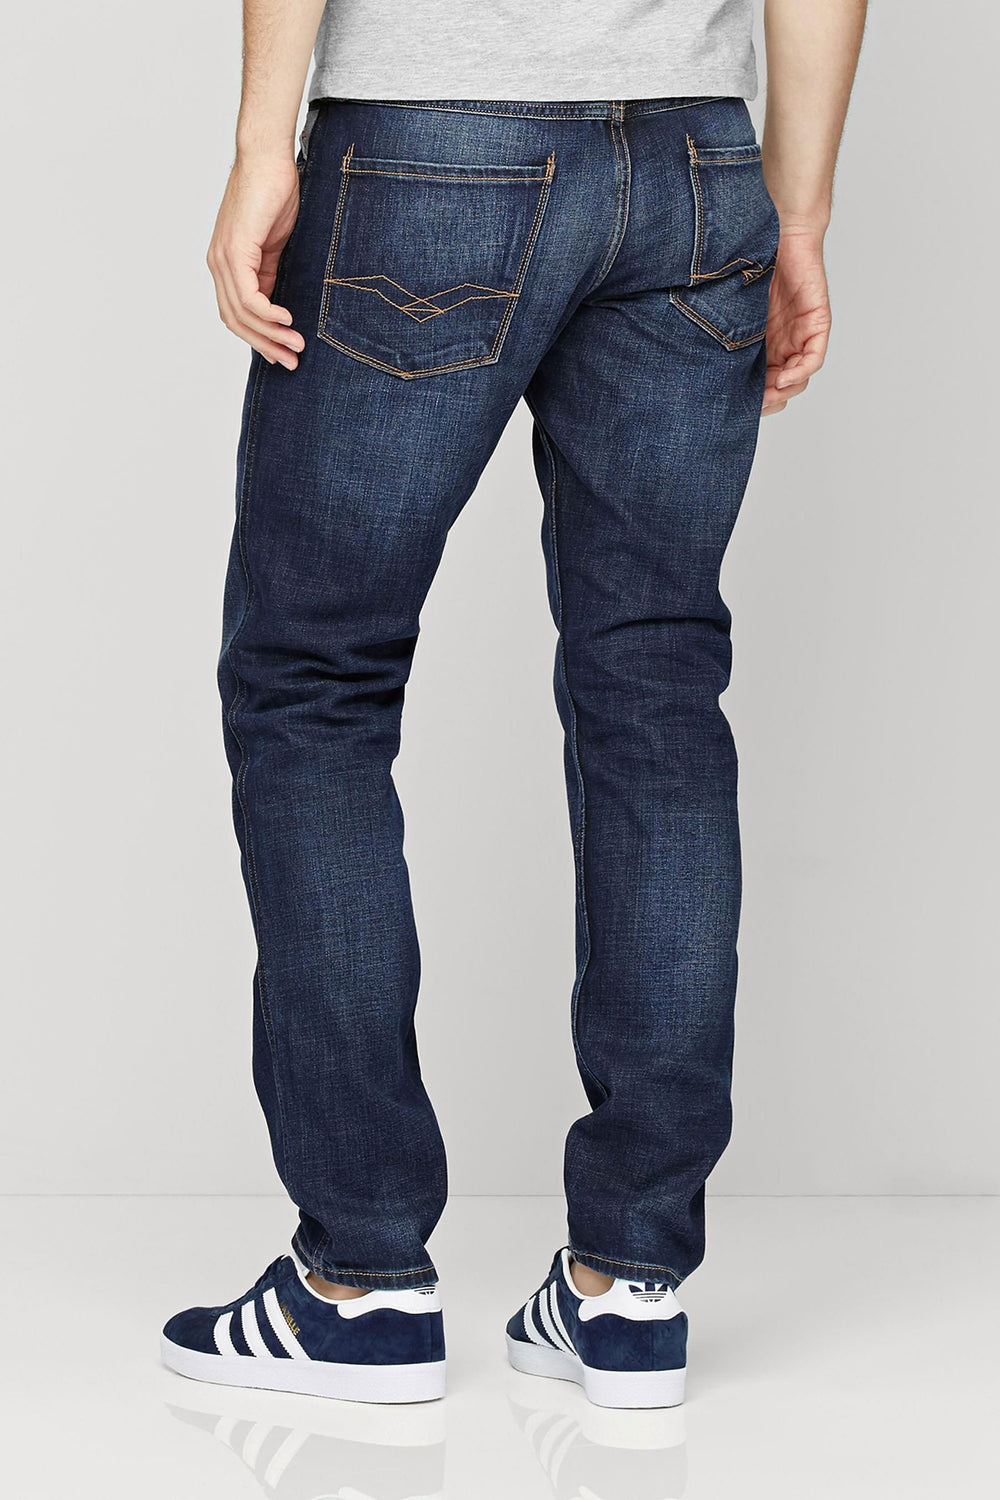 FREE SHIPPING AVAILABLE! Shop truedfil3gz.gq and save on Slim Fit Jeans.